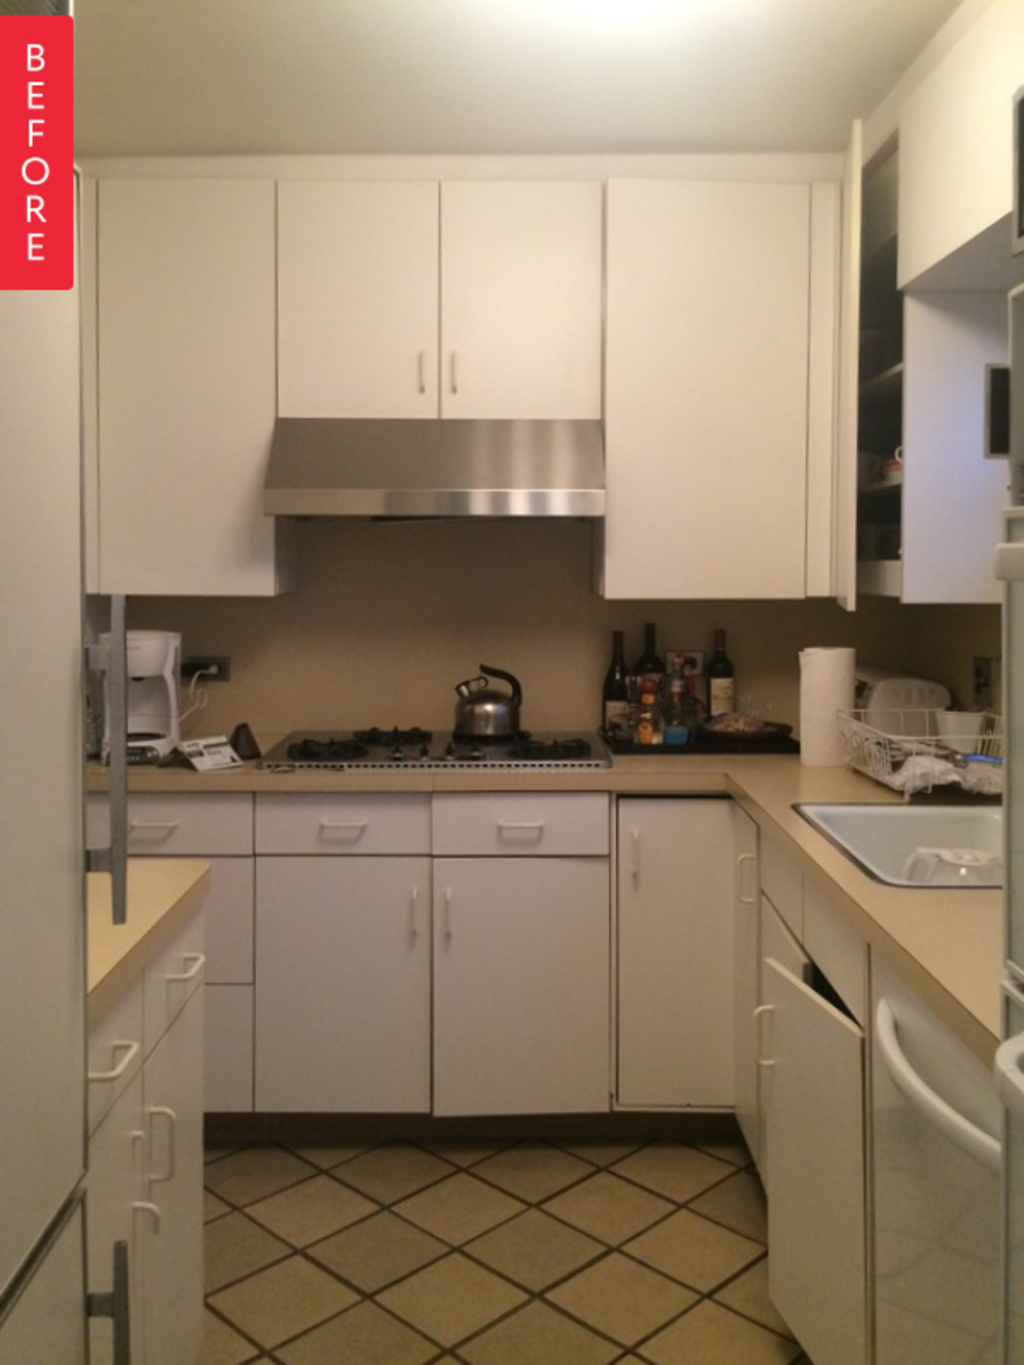 Before & After: A Classic Kitchen Update 40 Years in the Making